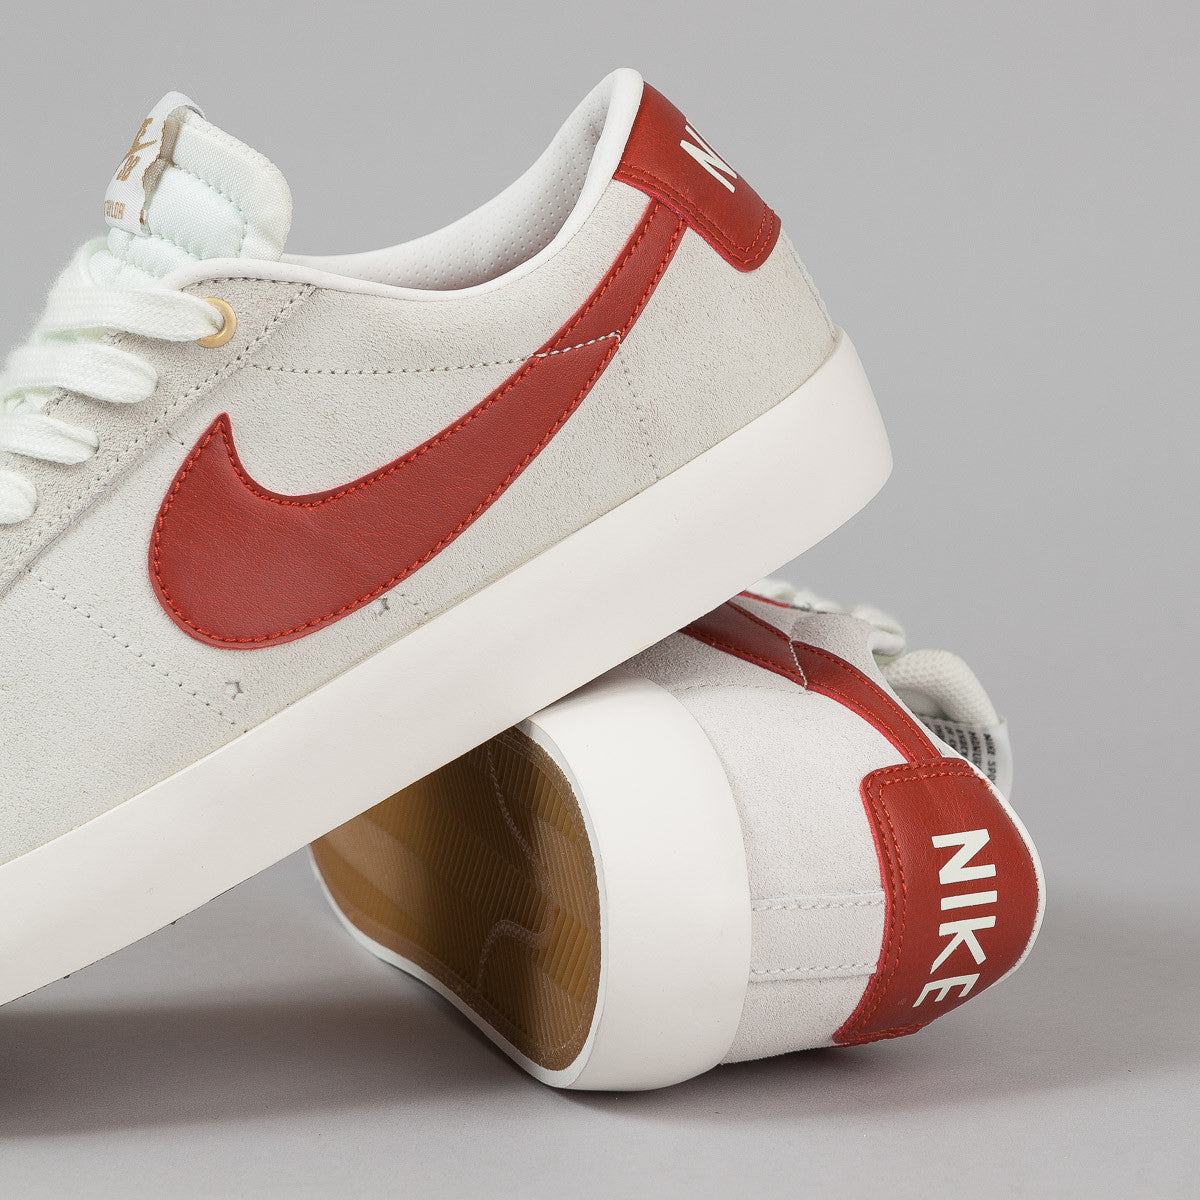 Nike SB Blazer Low GT Shoes - Ivory / Cinnabar / Metallic Gold